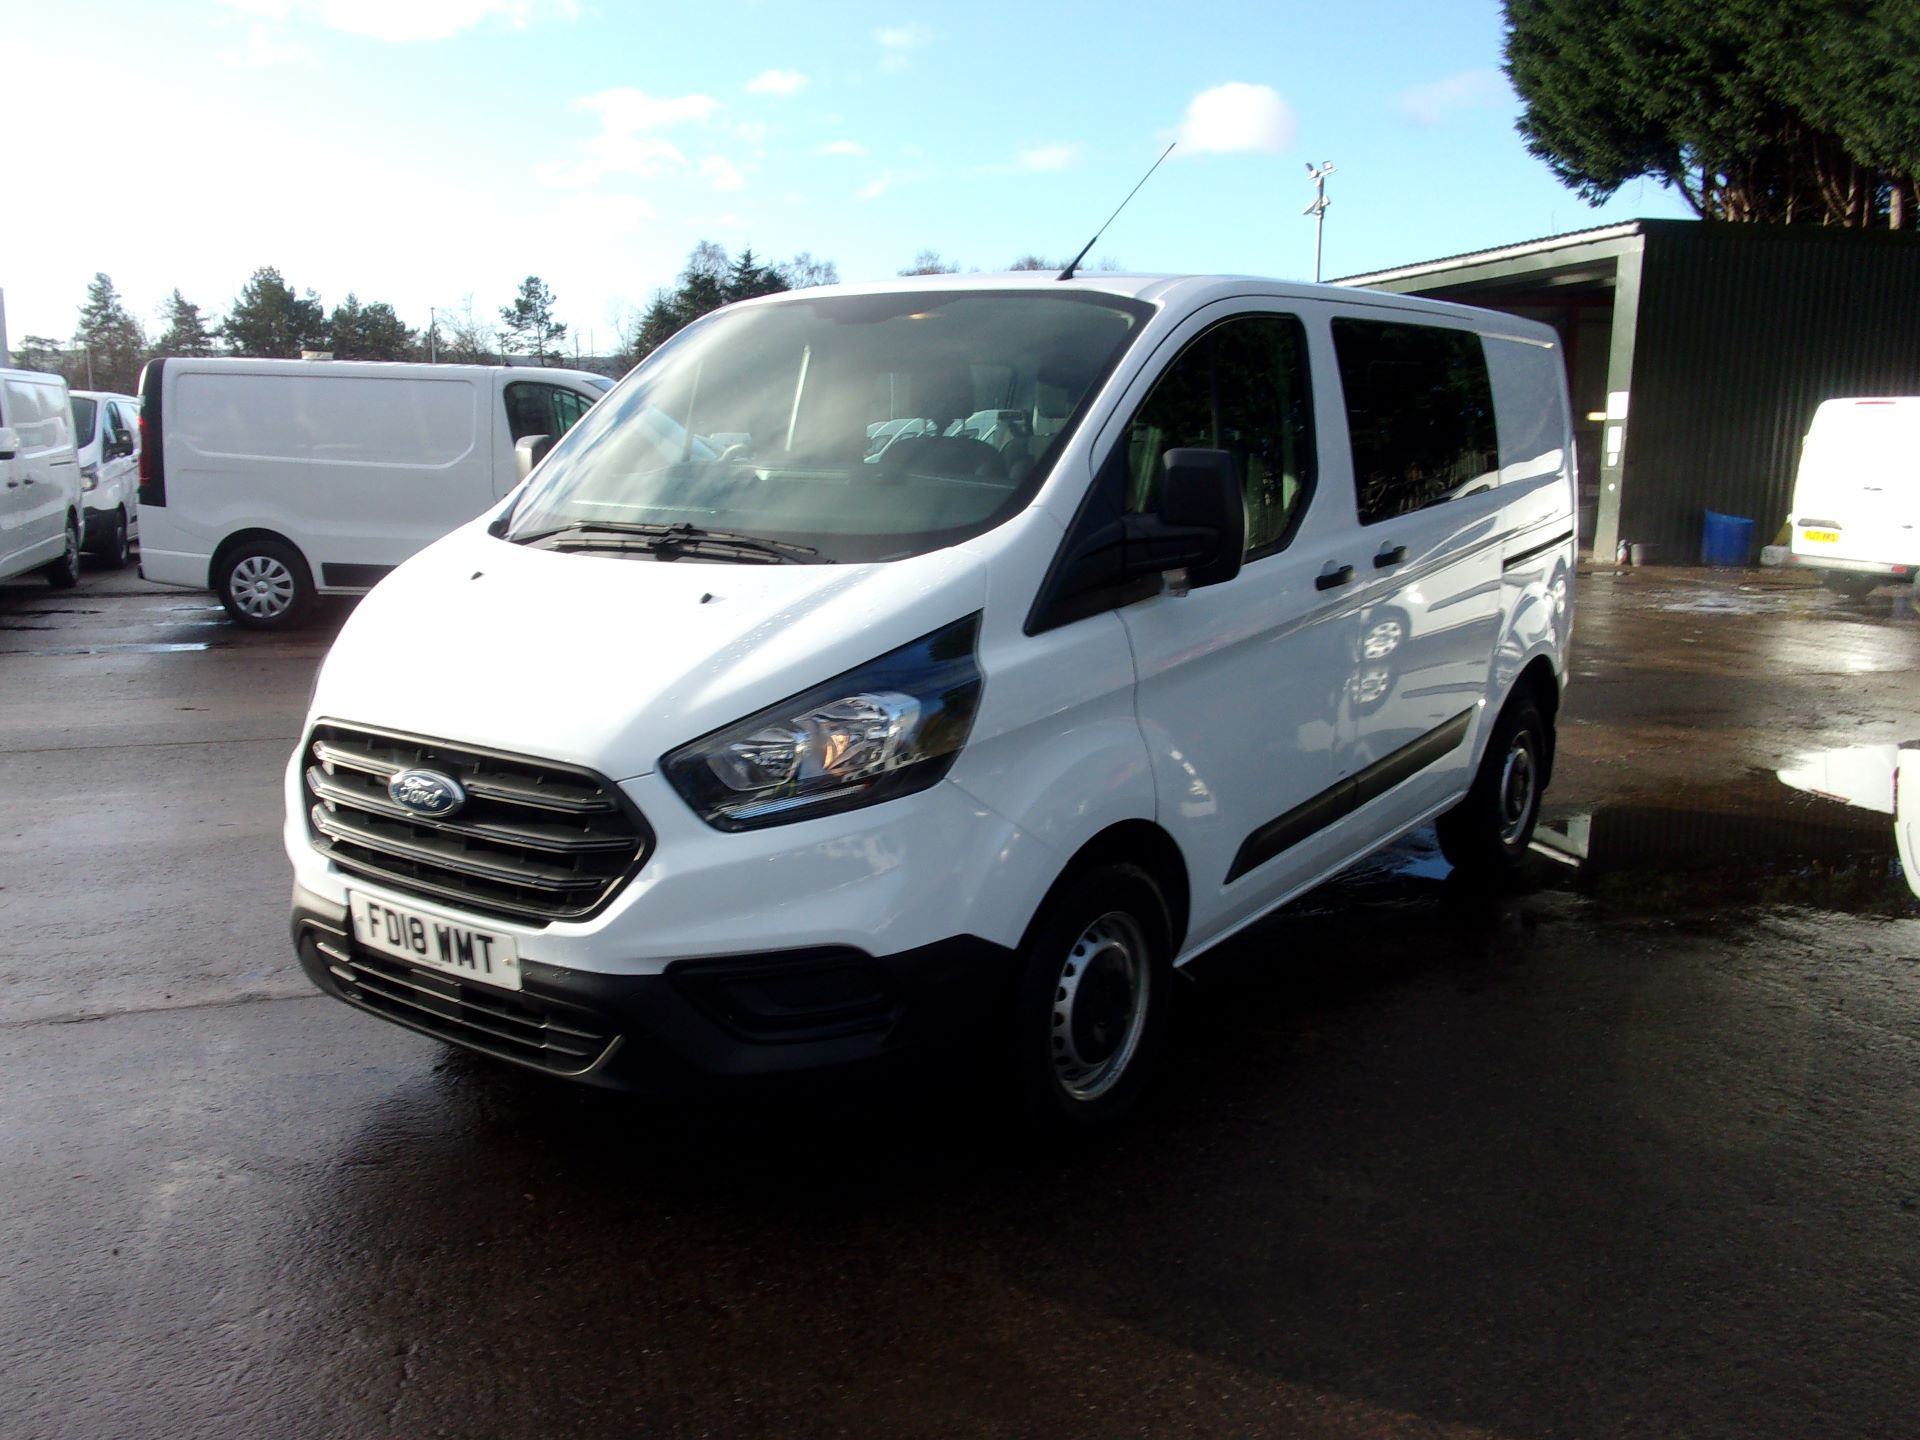 2018 Ford Transit Custom 300 L1 DIESEL FWD 2.0 TDCI 105PS LOW ROOF DOUBLE CAB VAN EURO 6 (FD18WMT) Image 14